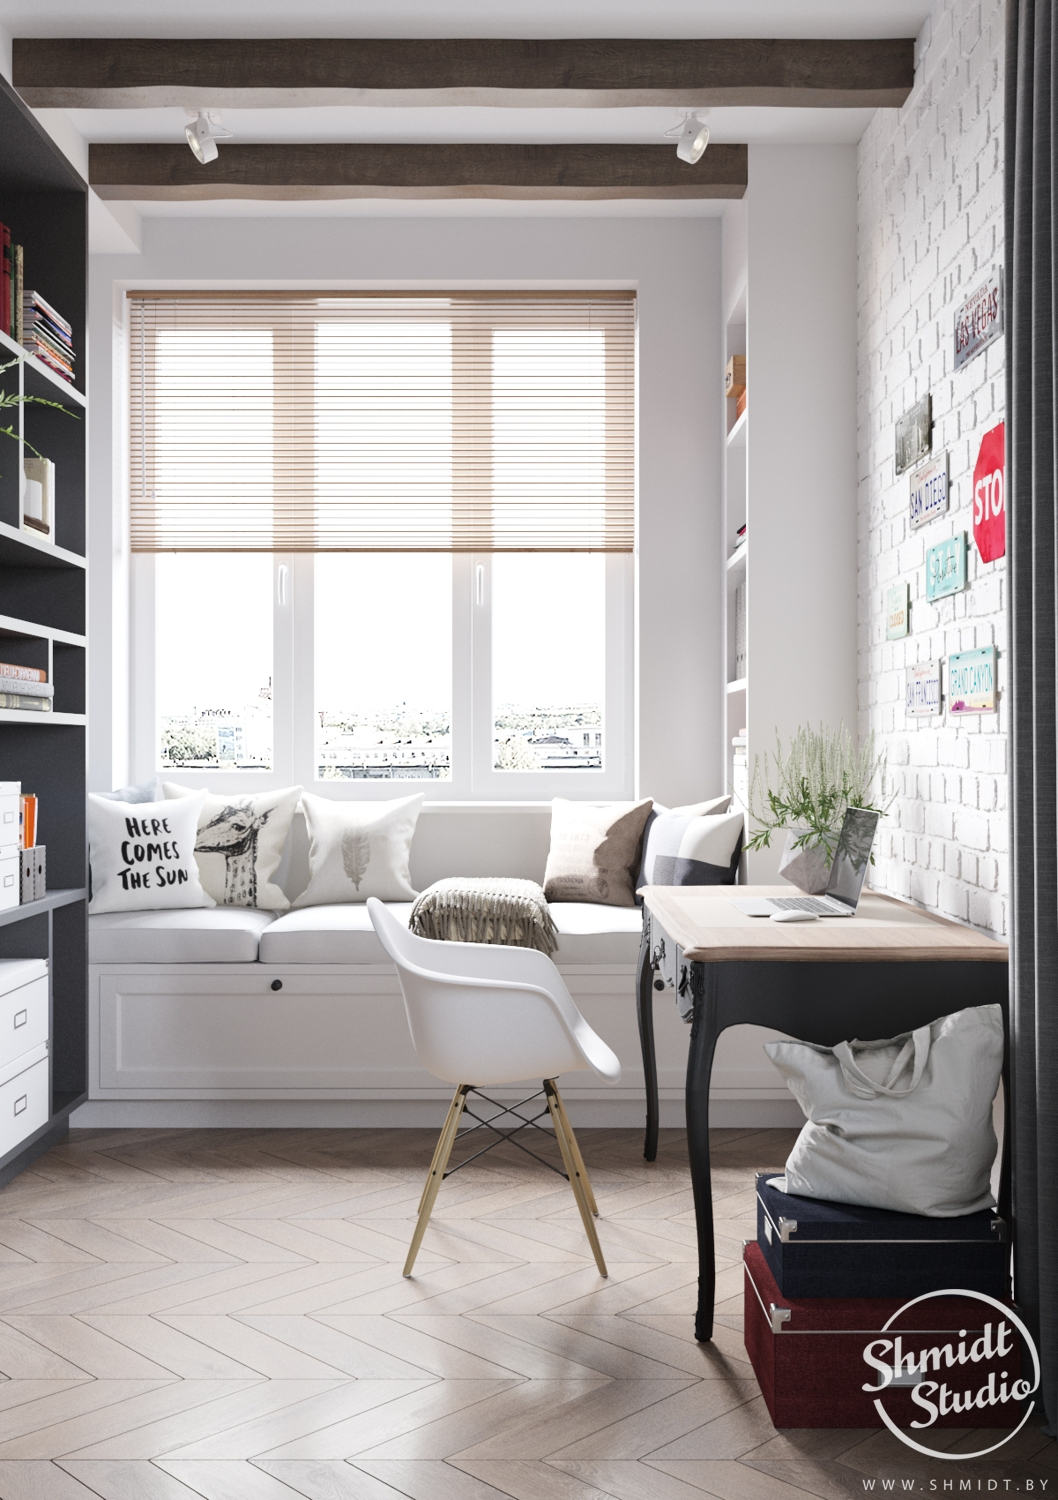 A Scandinavian Chic Style 3 Bedroom Apartment For A Young Family images 11